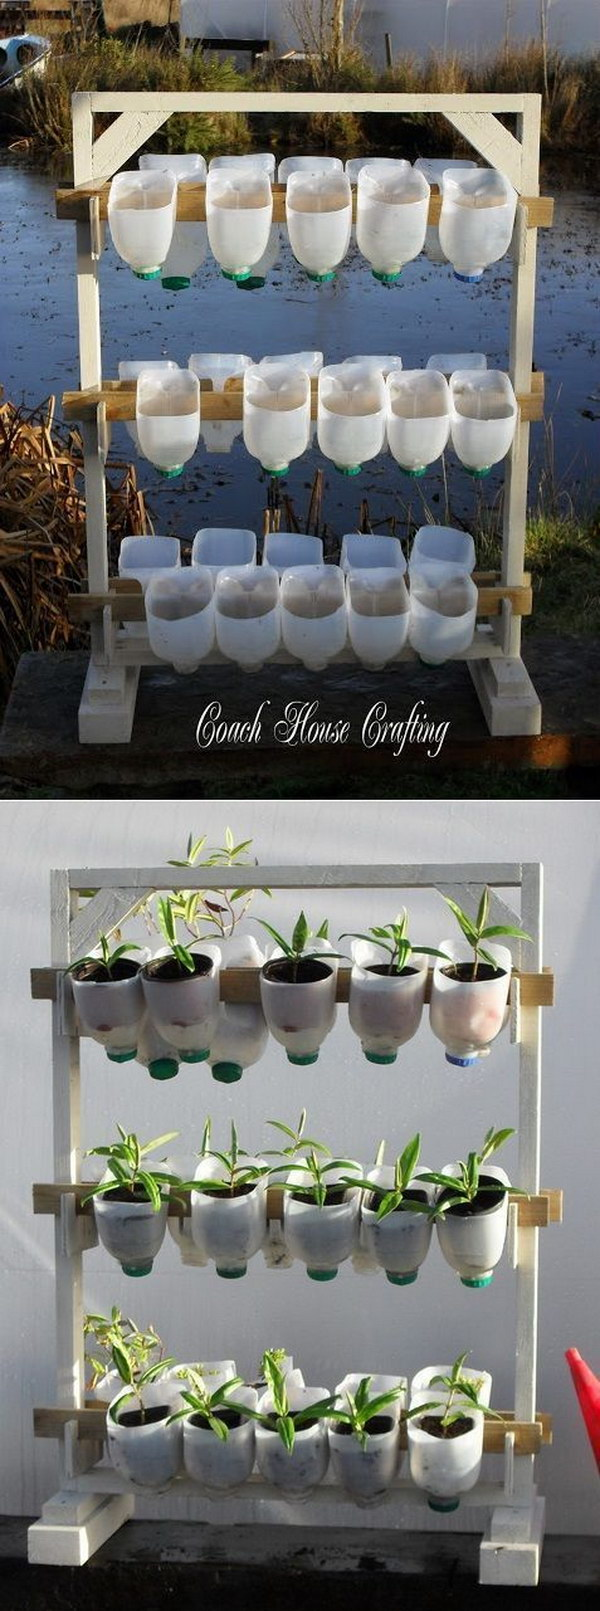 DIY Vertical Garden Using Plastic Milk Bottles